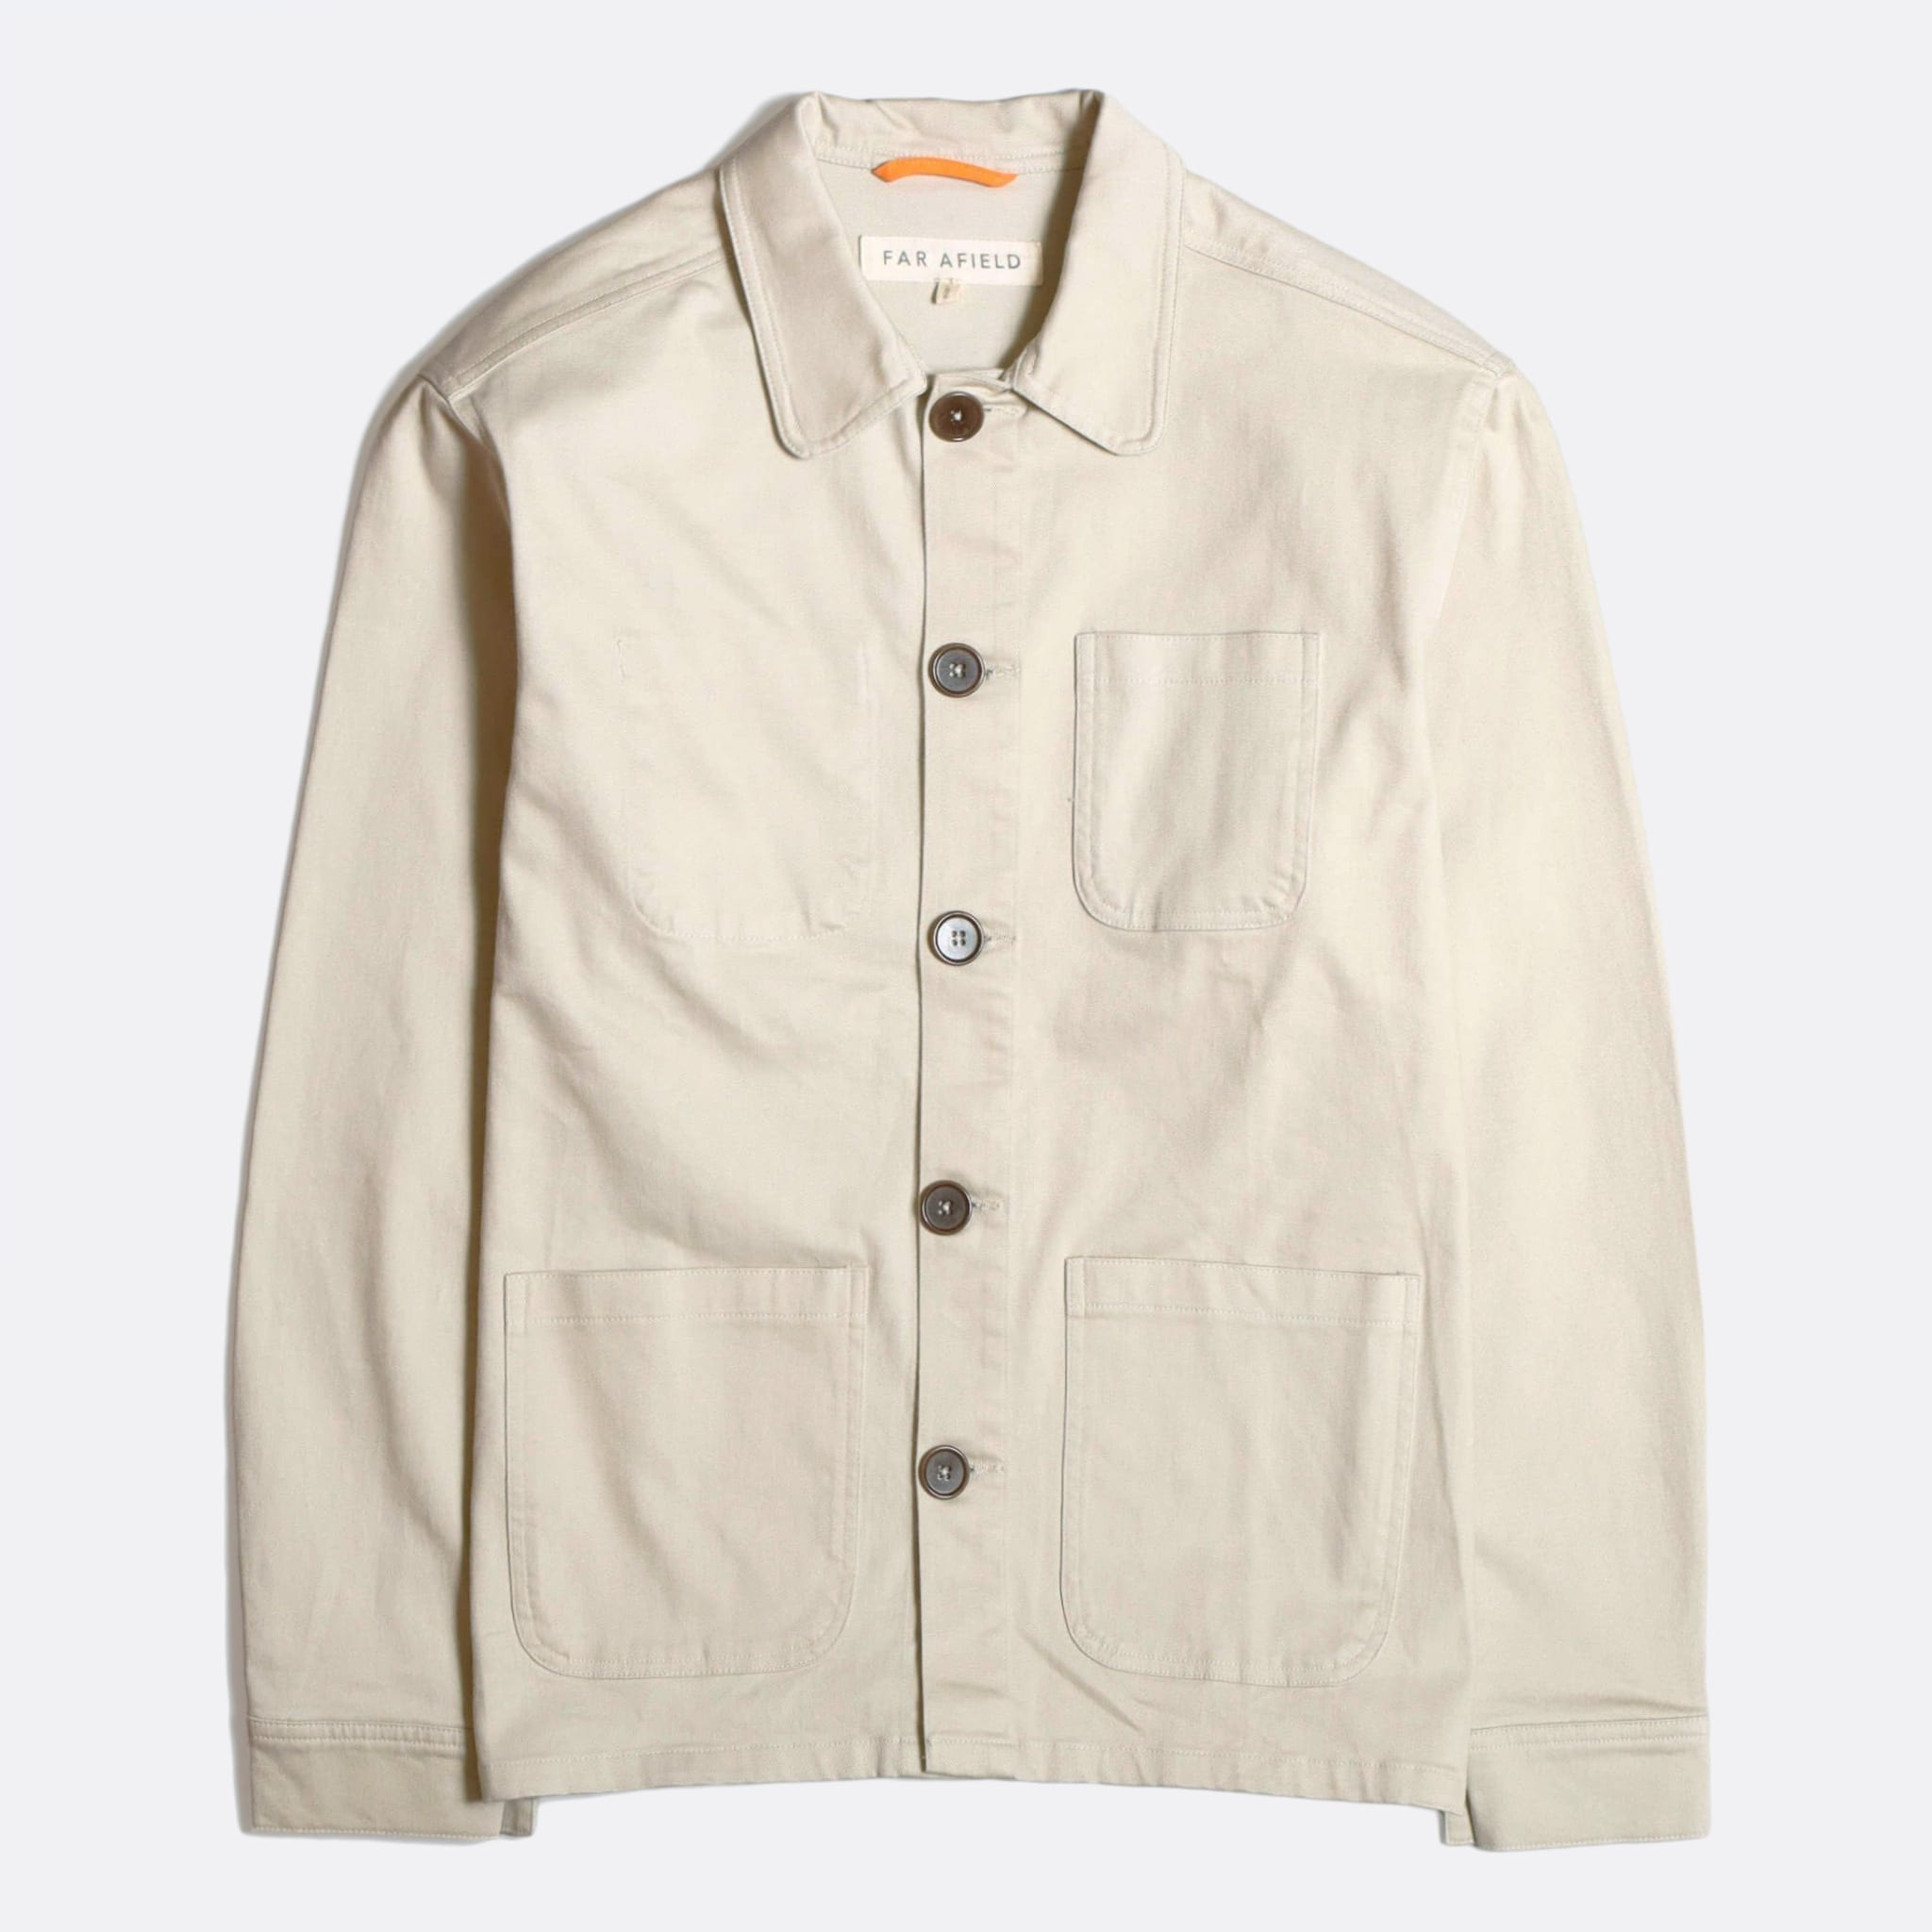 Far Afield Station Jacket a Pumice Stone Organic Cotton Twill Fabric Lightweight Utility Overshirt Classic Work